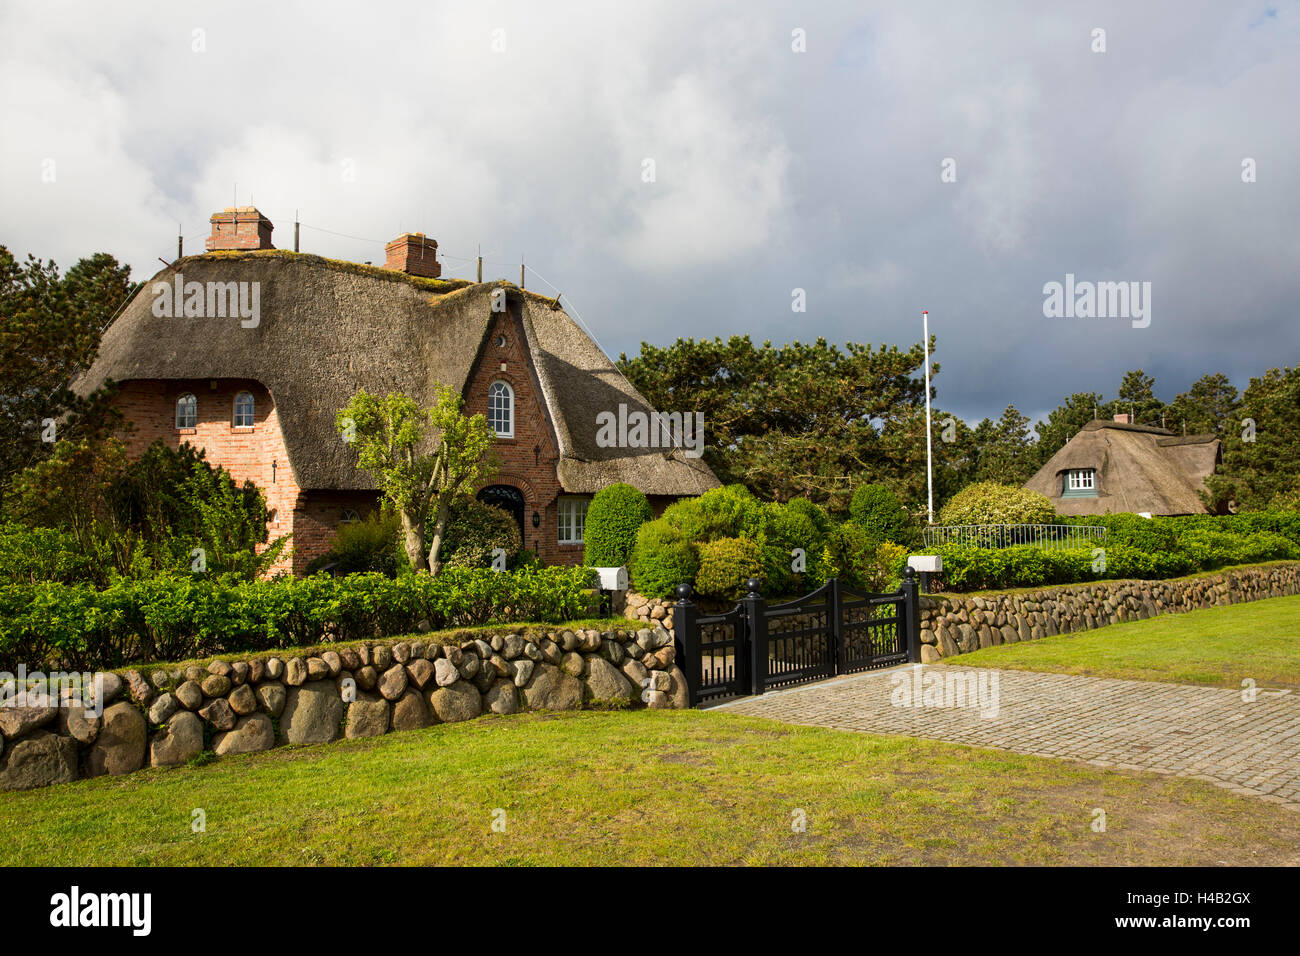 Wiegand Sylt Celebrity Real Estate High Resolution Stock Photography And Images - Alamy